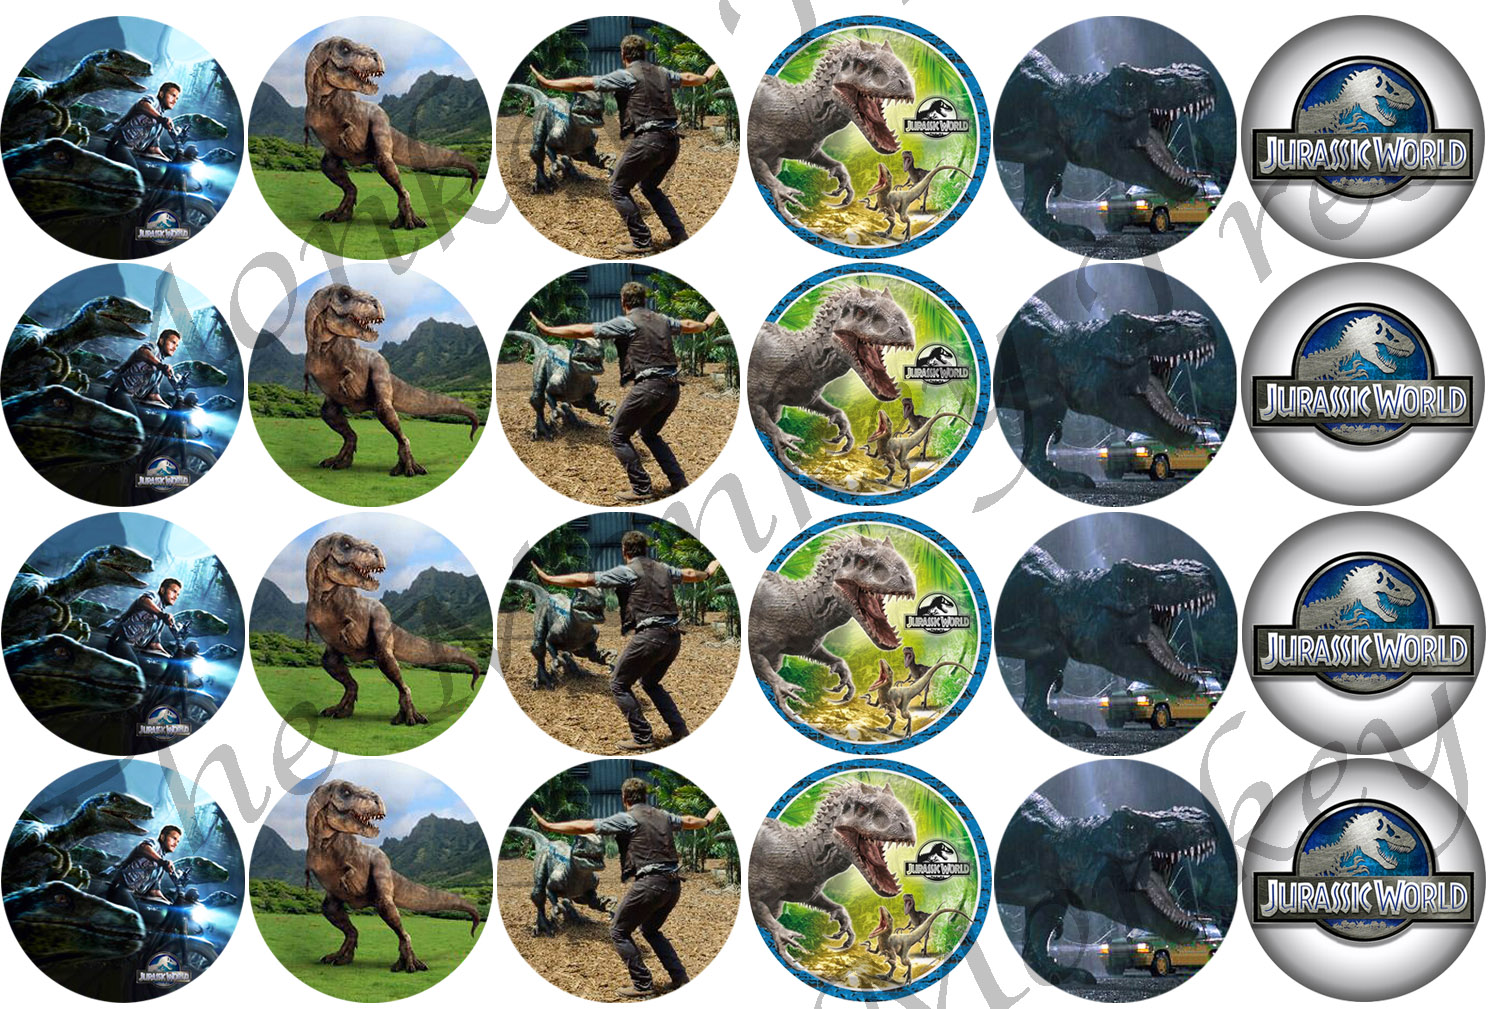 Jurassic World Dinosaur Cupcake Edible Cake Images Set Of 24 The